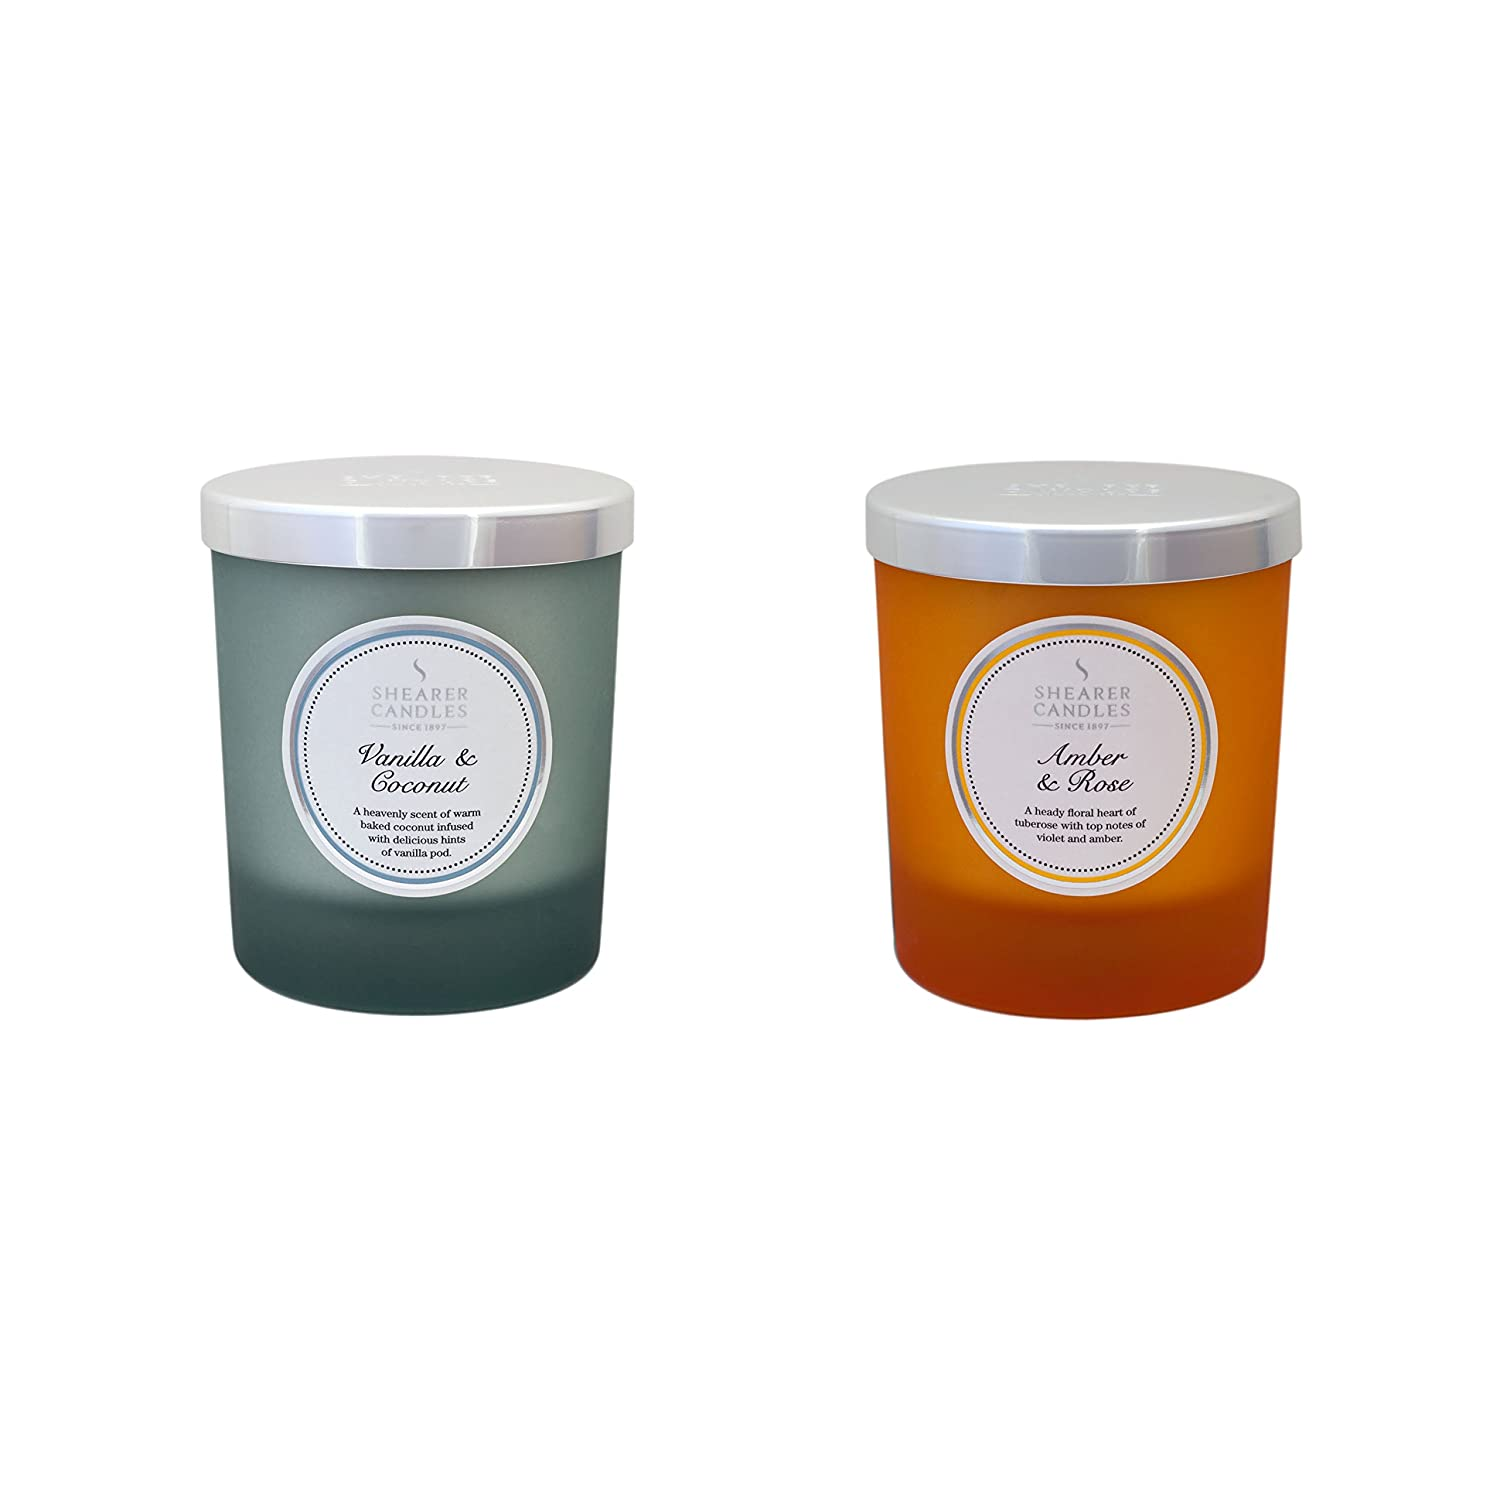 Shearer Candles Scented Twin Pack-Vanilla & Coconut, Amber & Rose, Wax, Assorted, 24 x 13 x 12 cm ZZ0057